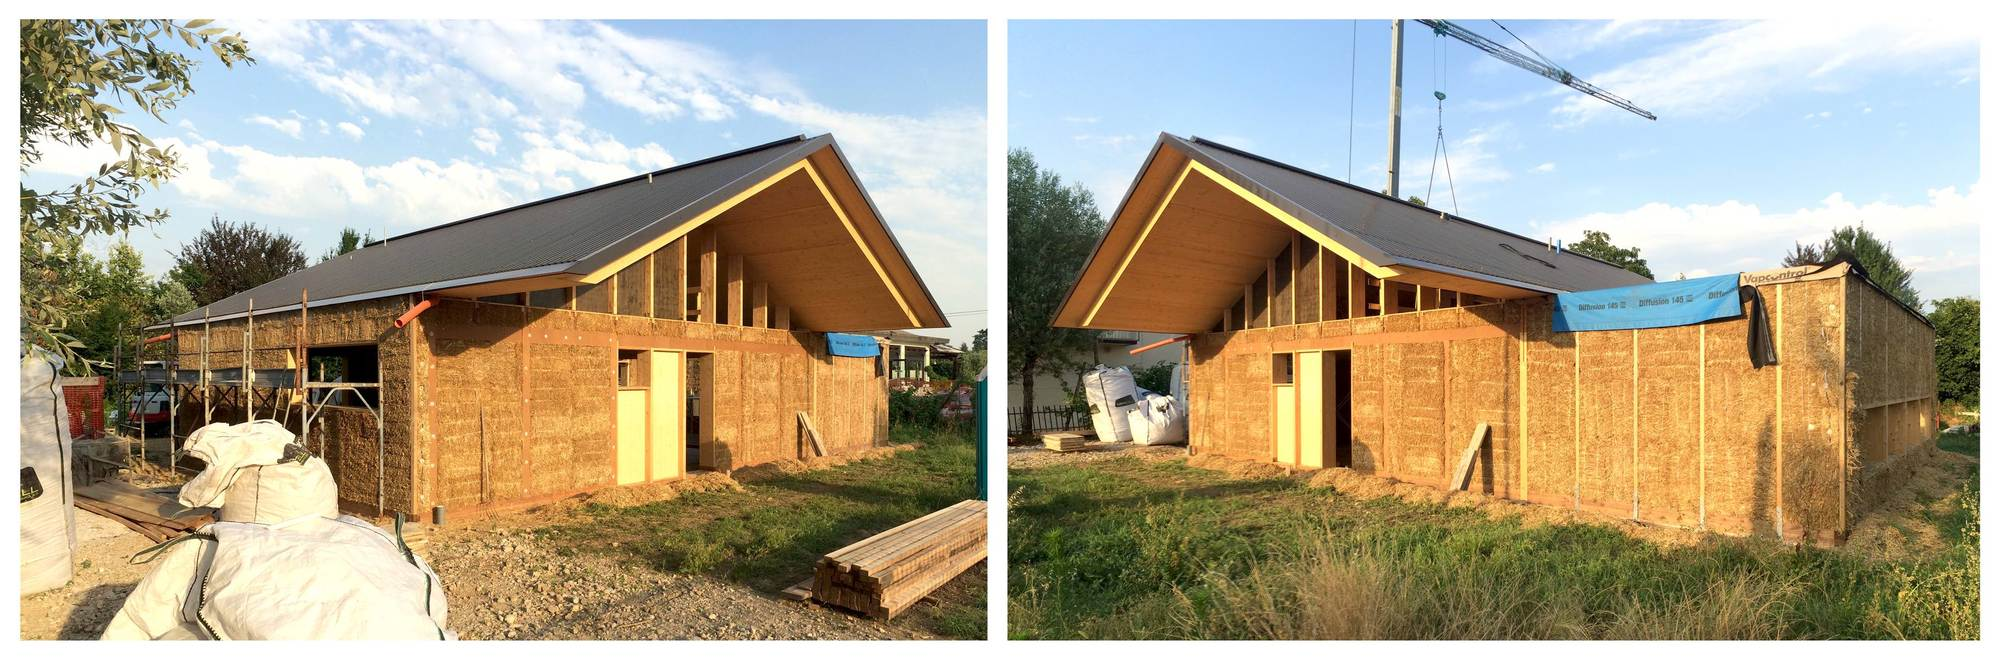 Gallery of scl straw bale house jimmi pianezzola for Autoconstruction maison prix